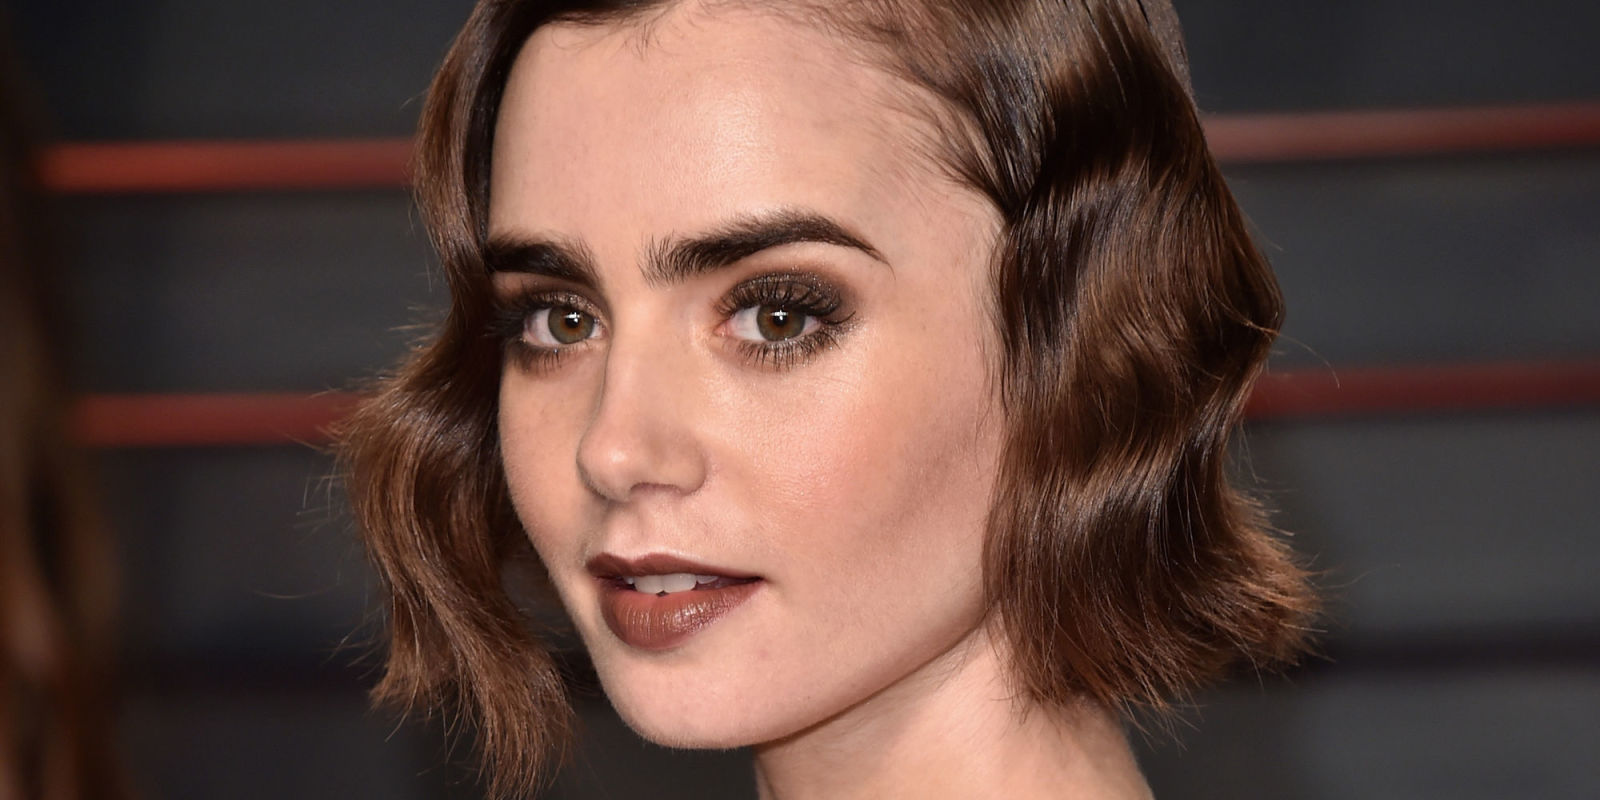 Lily Collins just got a fairytale inspired tattoo